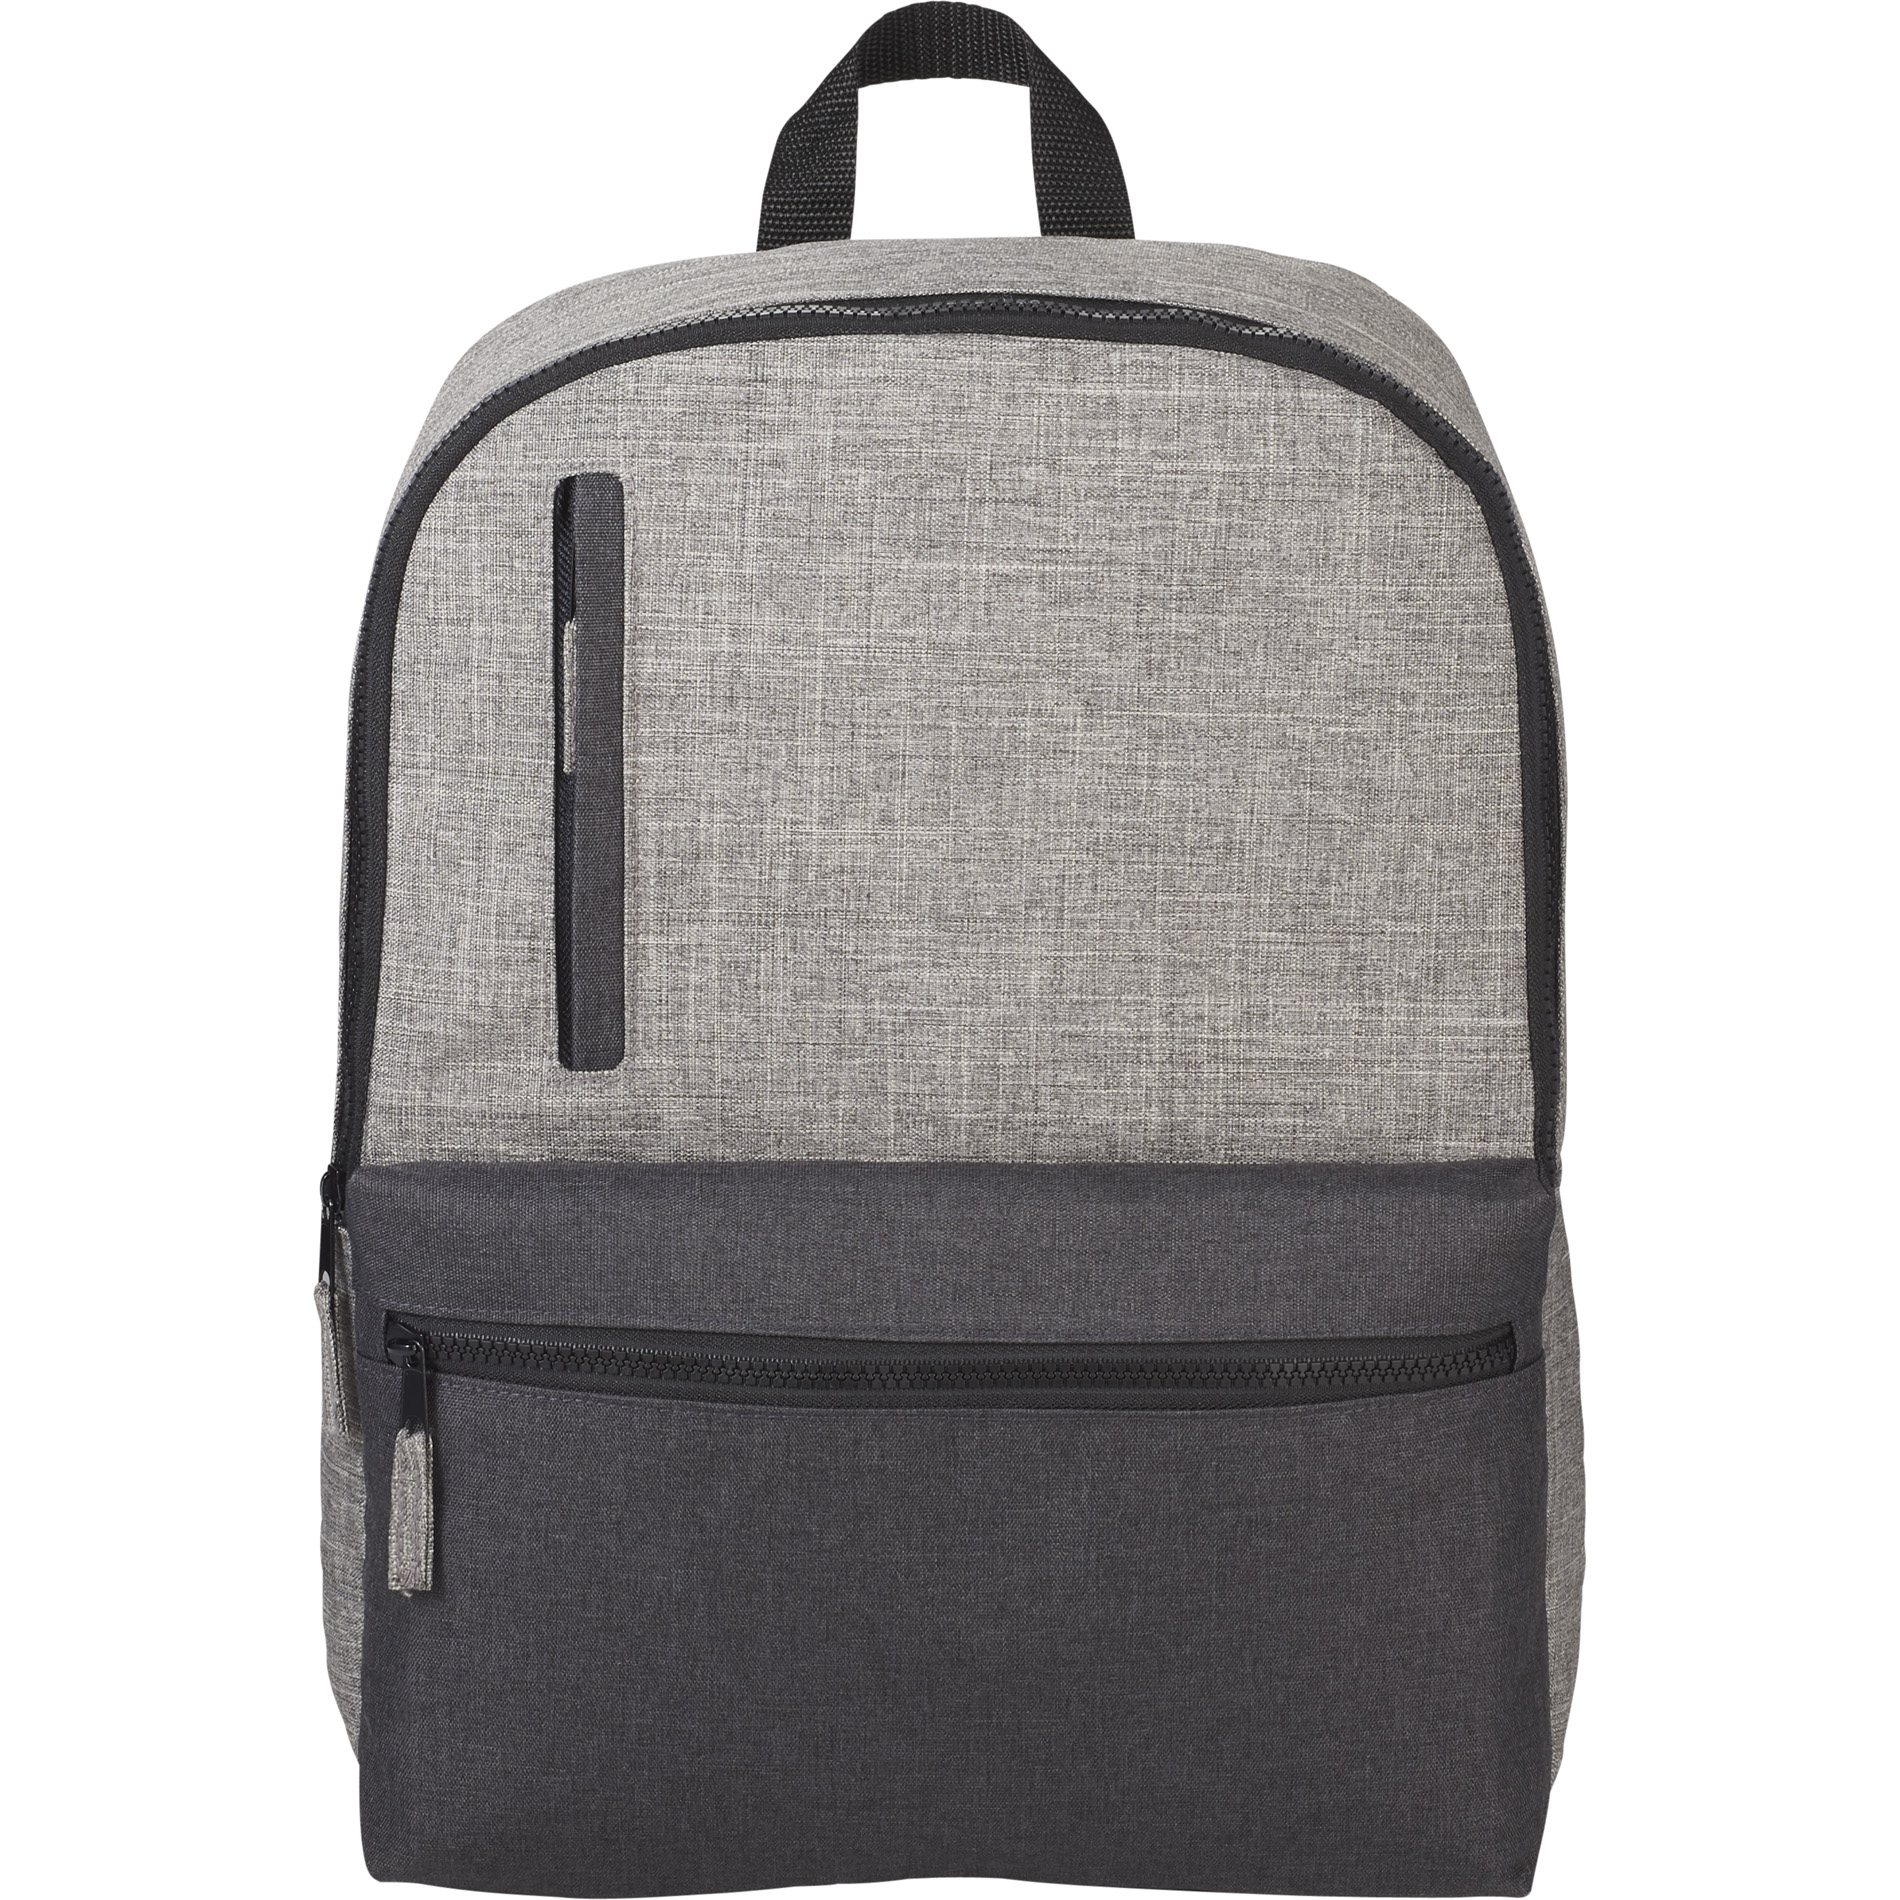 Parkland 3001-70 - Reclaim Recycled 15 Computer Backpack